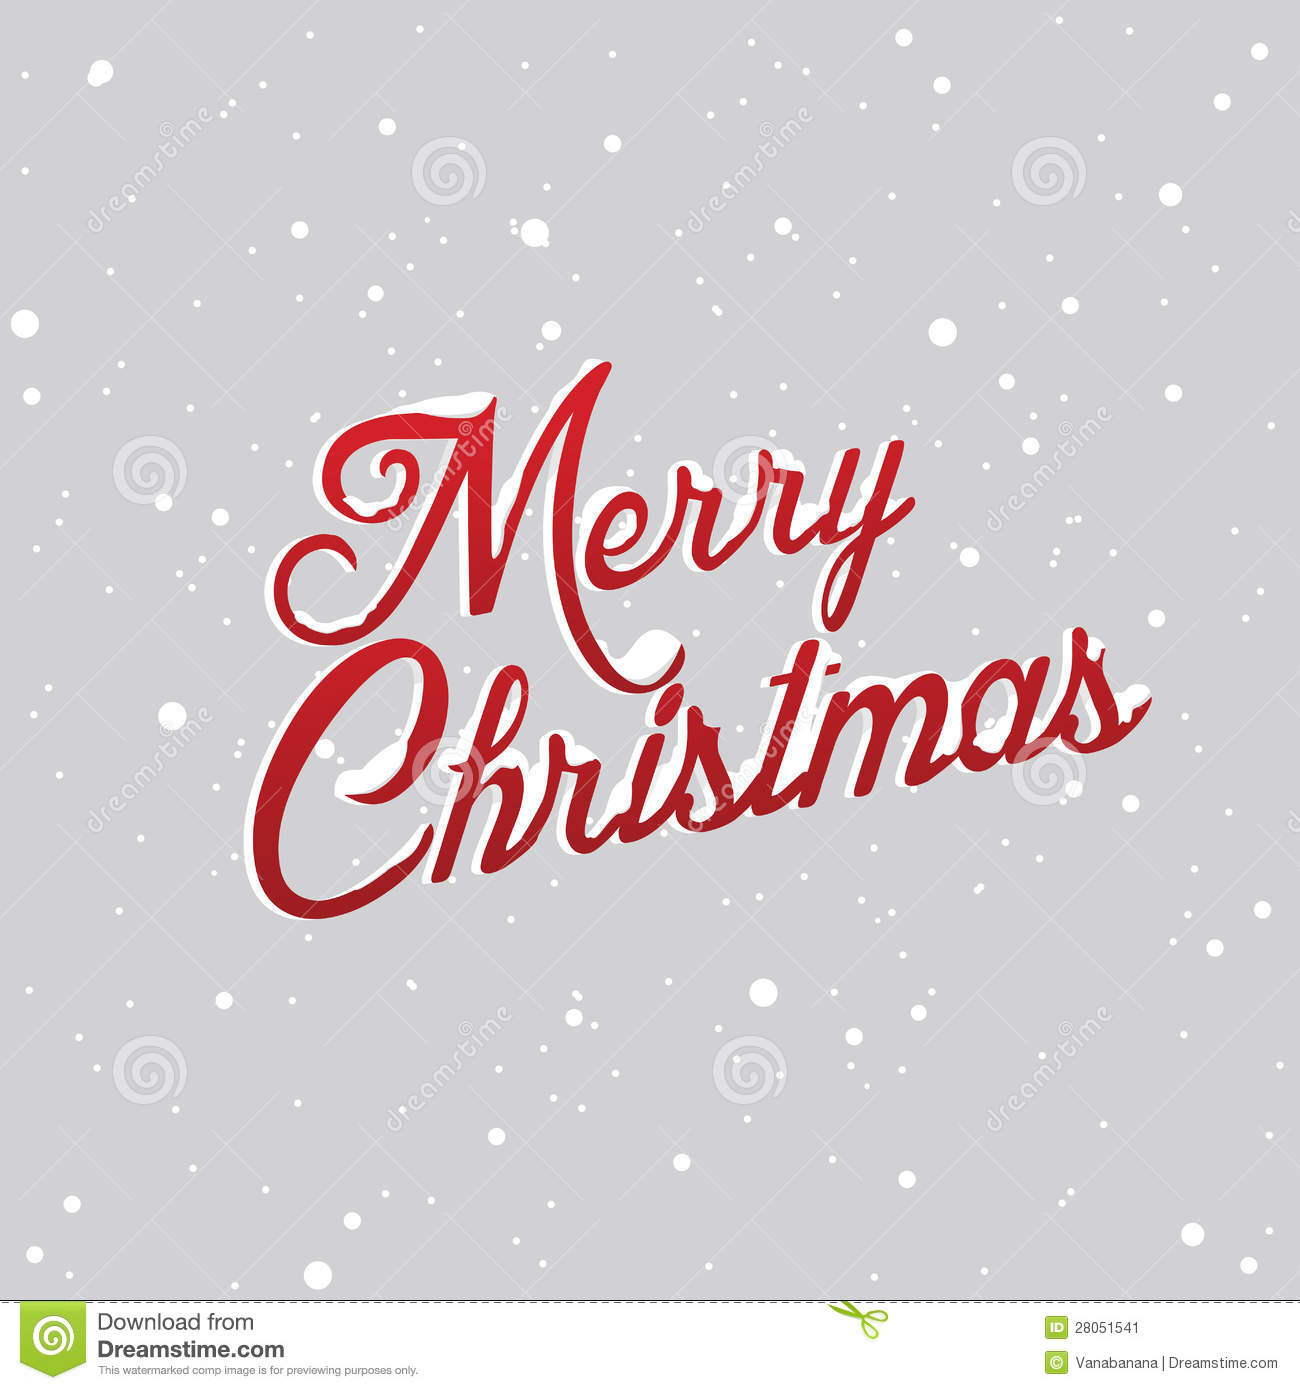 Merry christmas letter tiredriveeasy merry christmas letter spiritdancerdesigns Choice Image